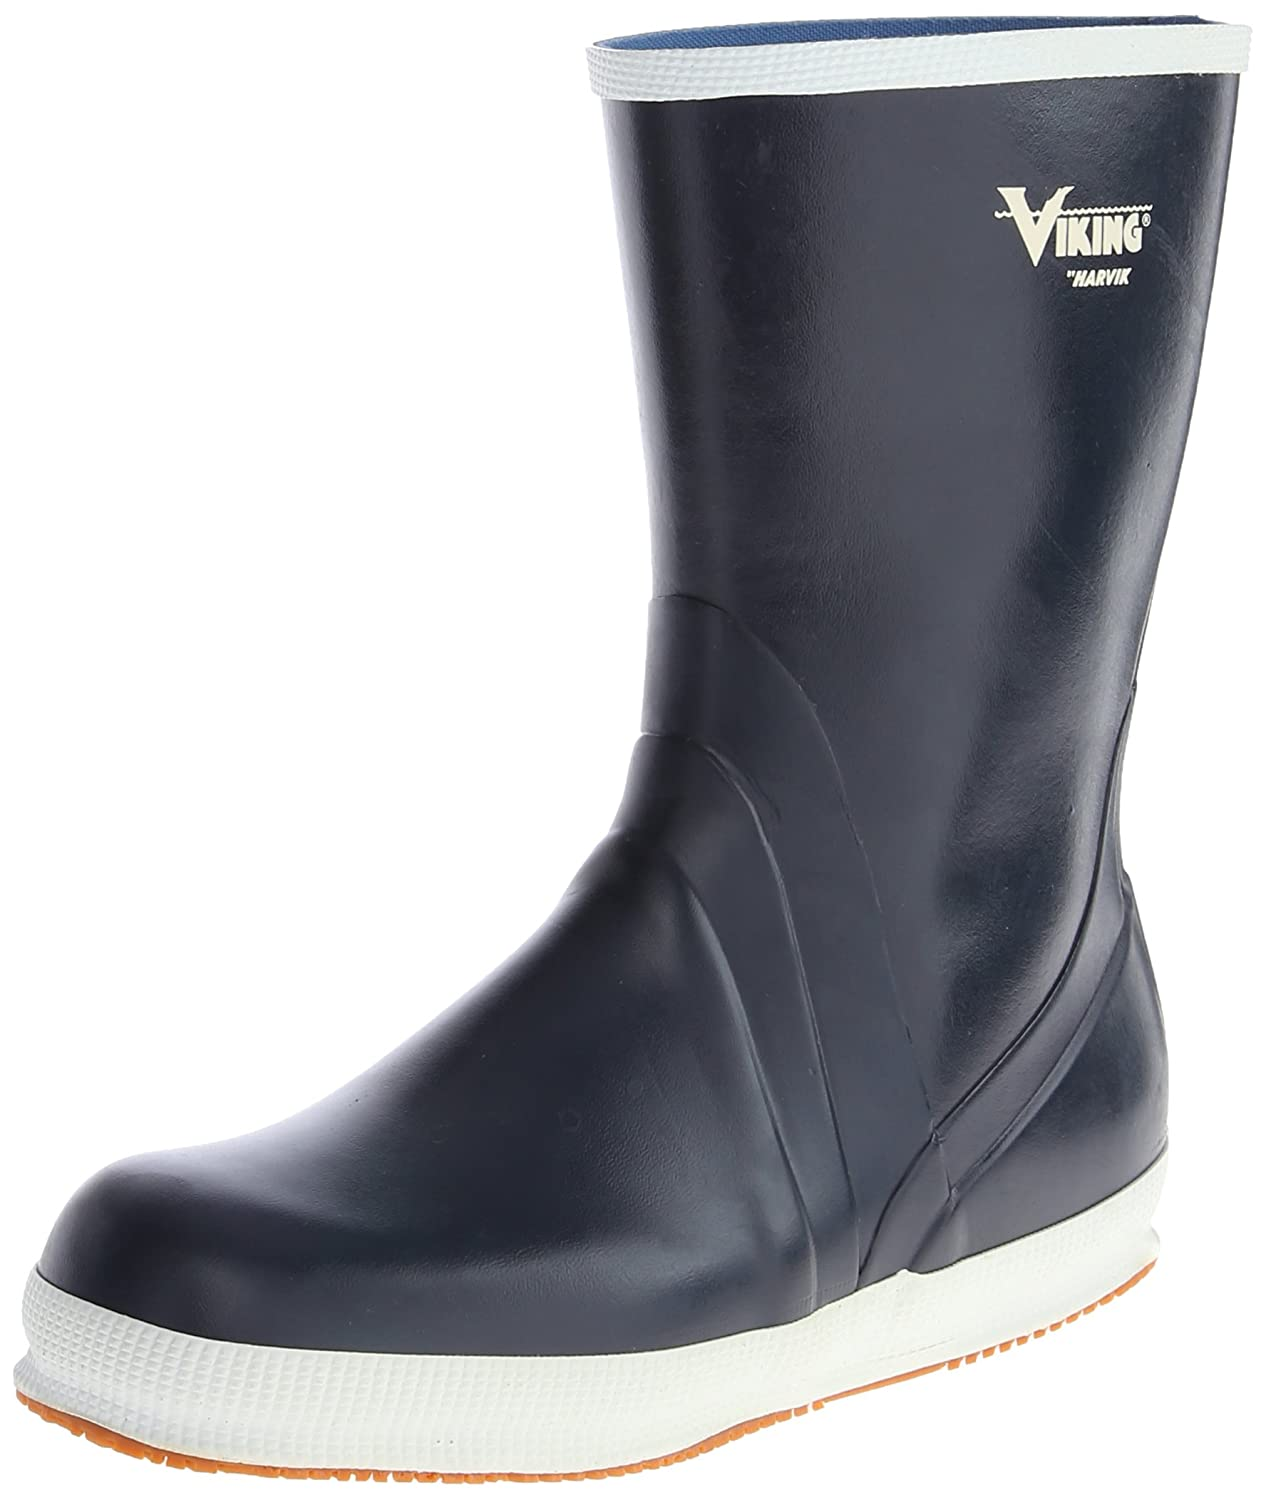 Viking Footwear Mariner Kadett Waterproof Slip-Resistant Boot VW24